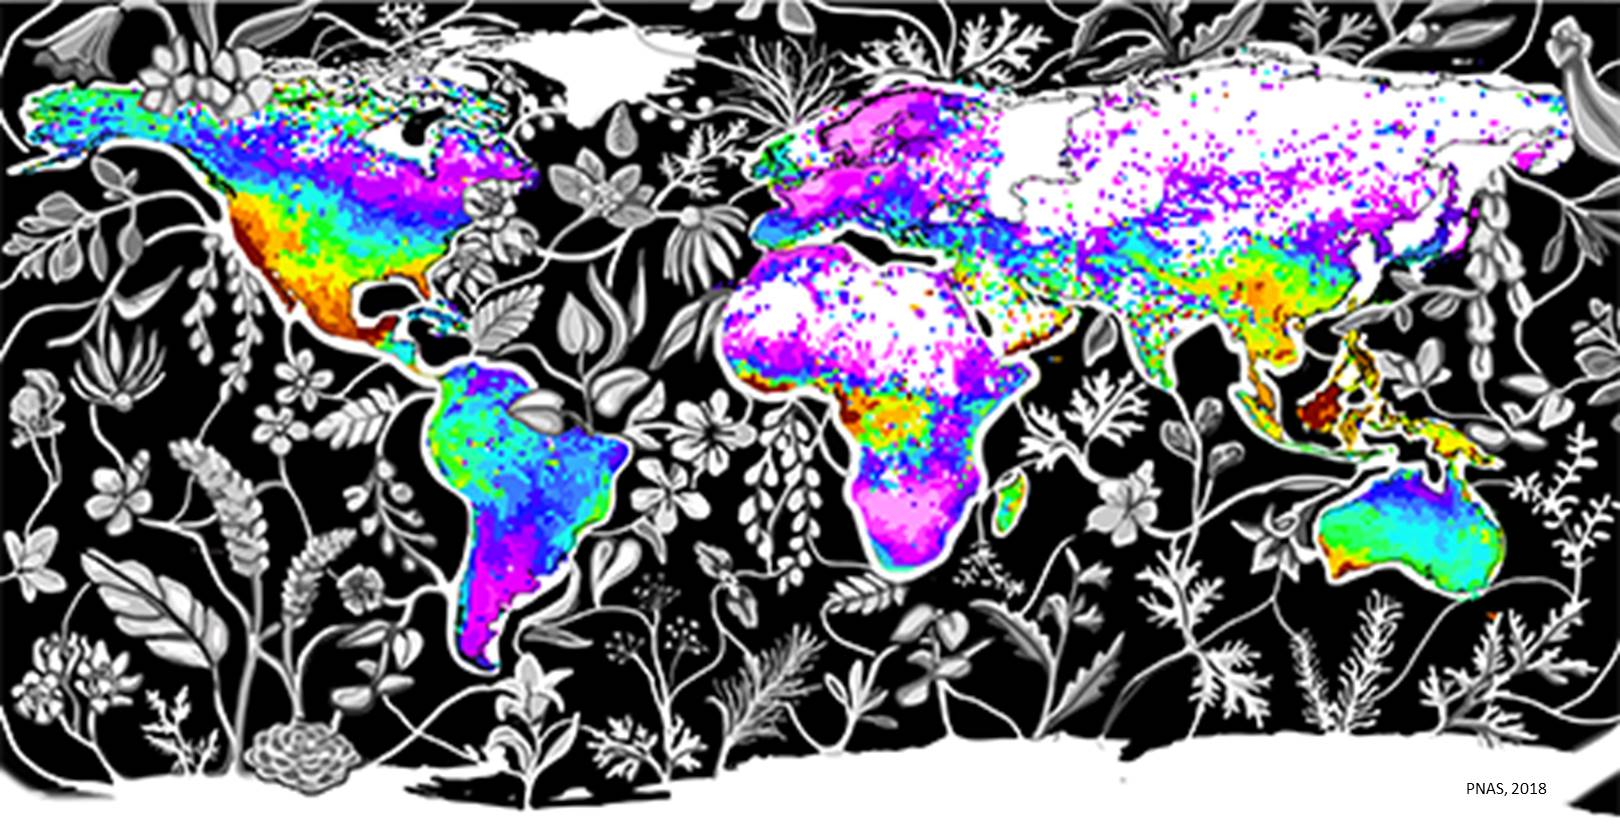 Machine-learning approach identifies plants at risk of extinction